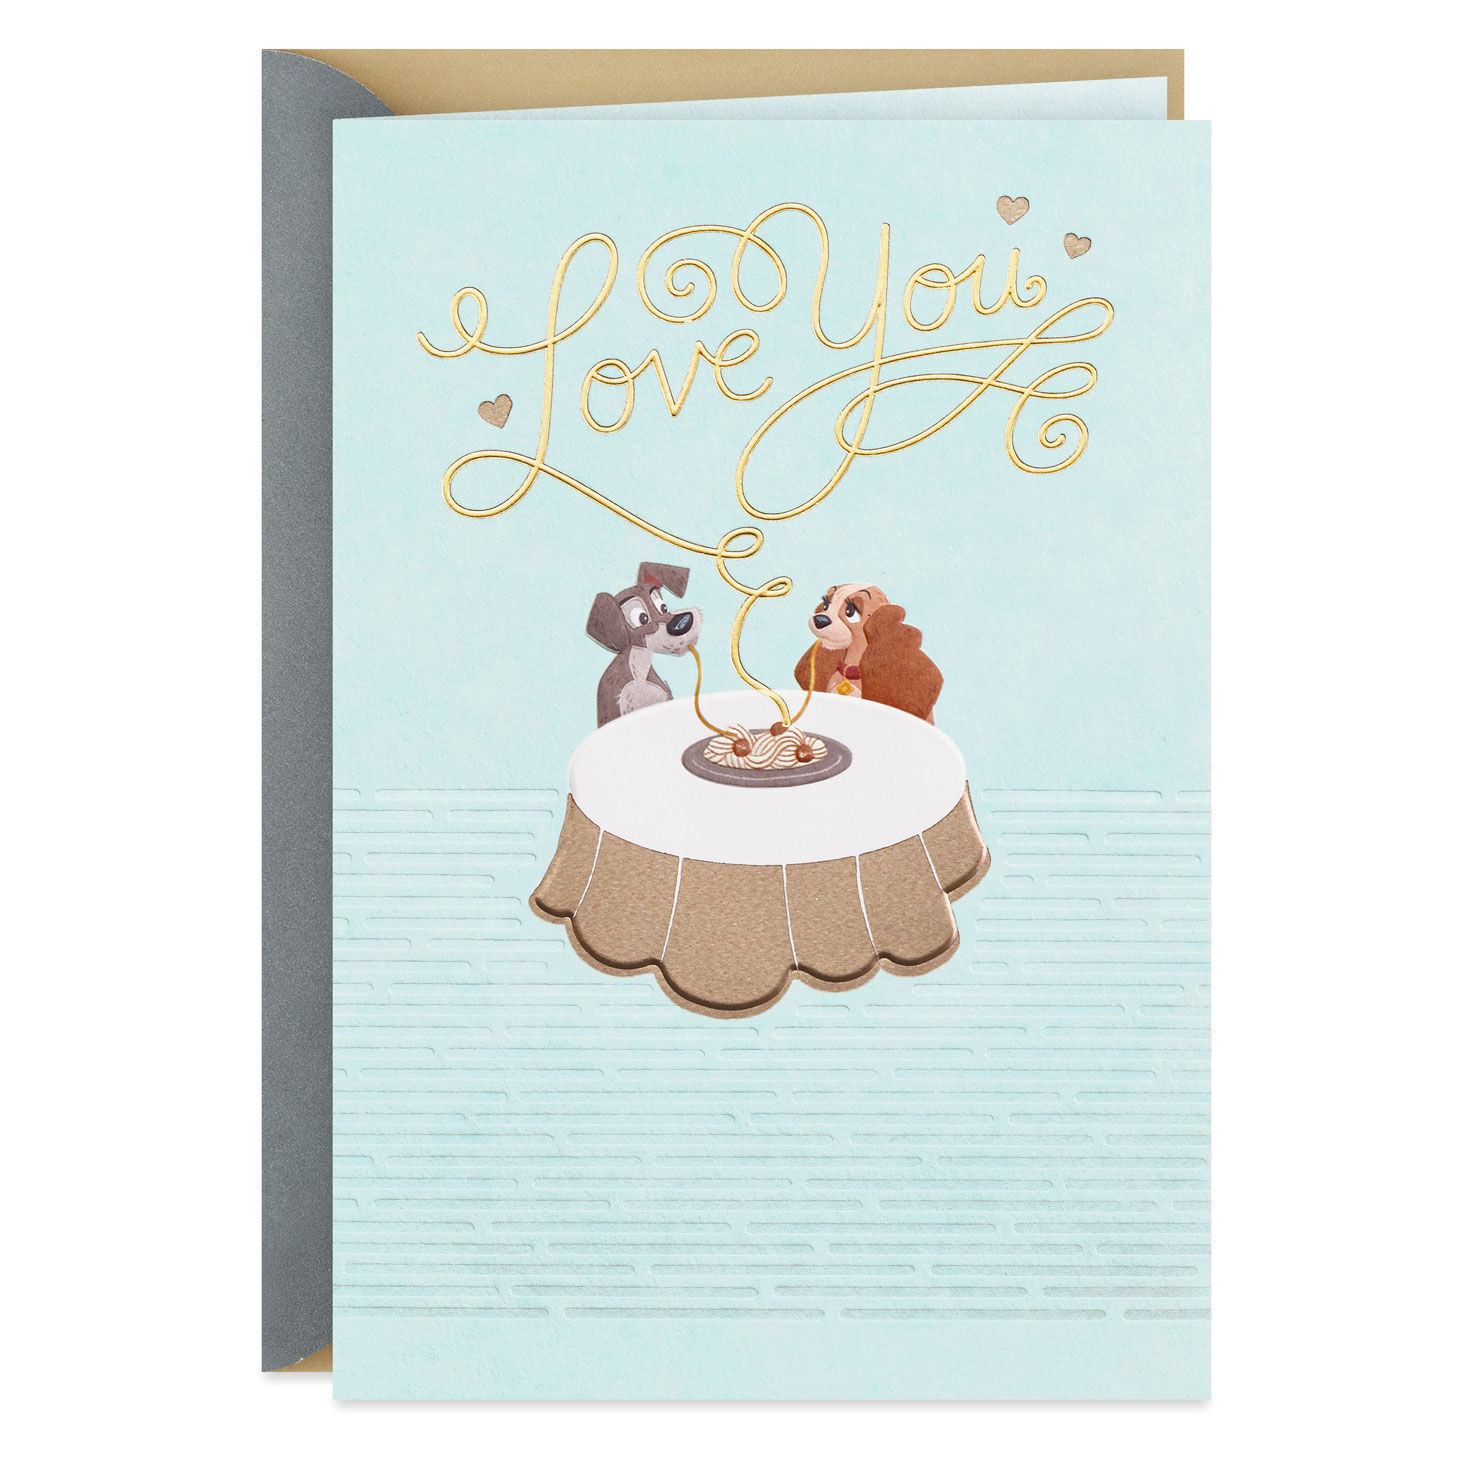 Lady And The Tramp Delicious Moments Anniversary Card Greeting Cards Hallmark